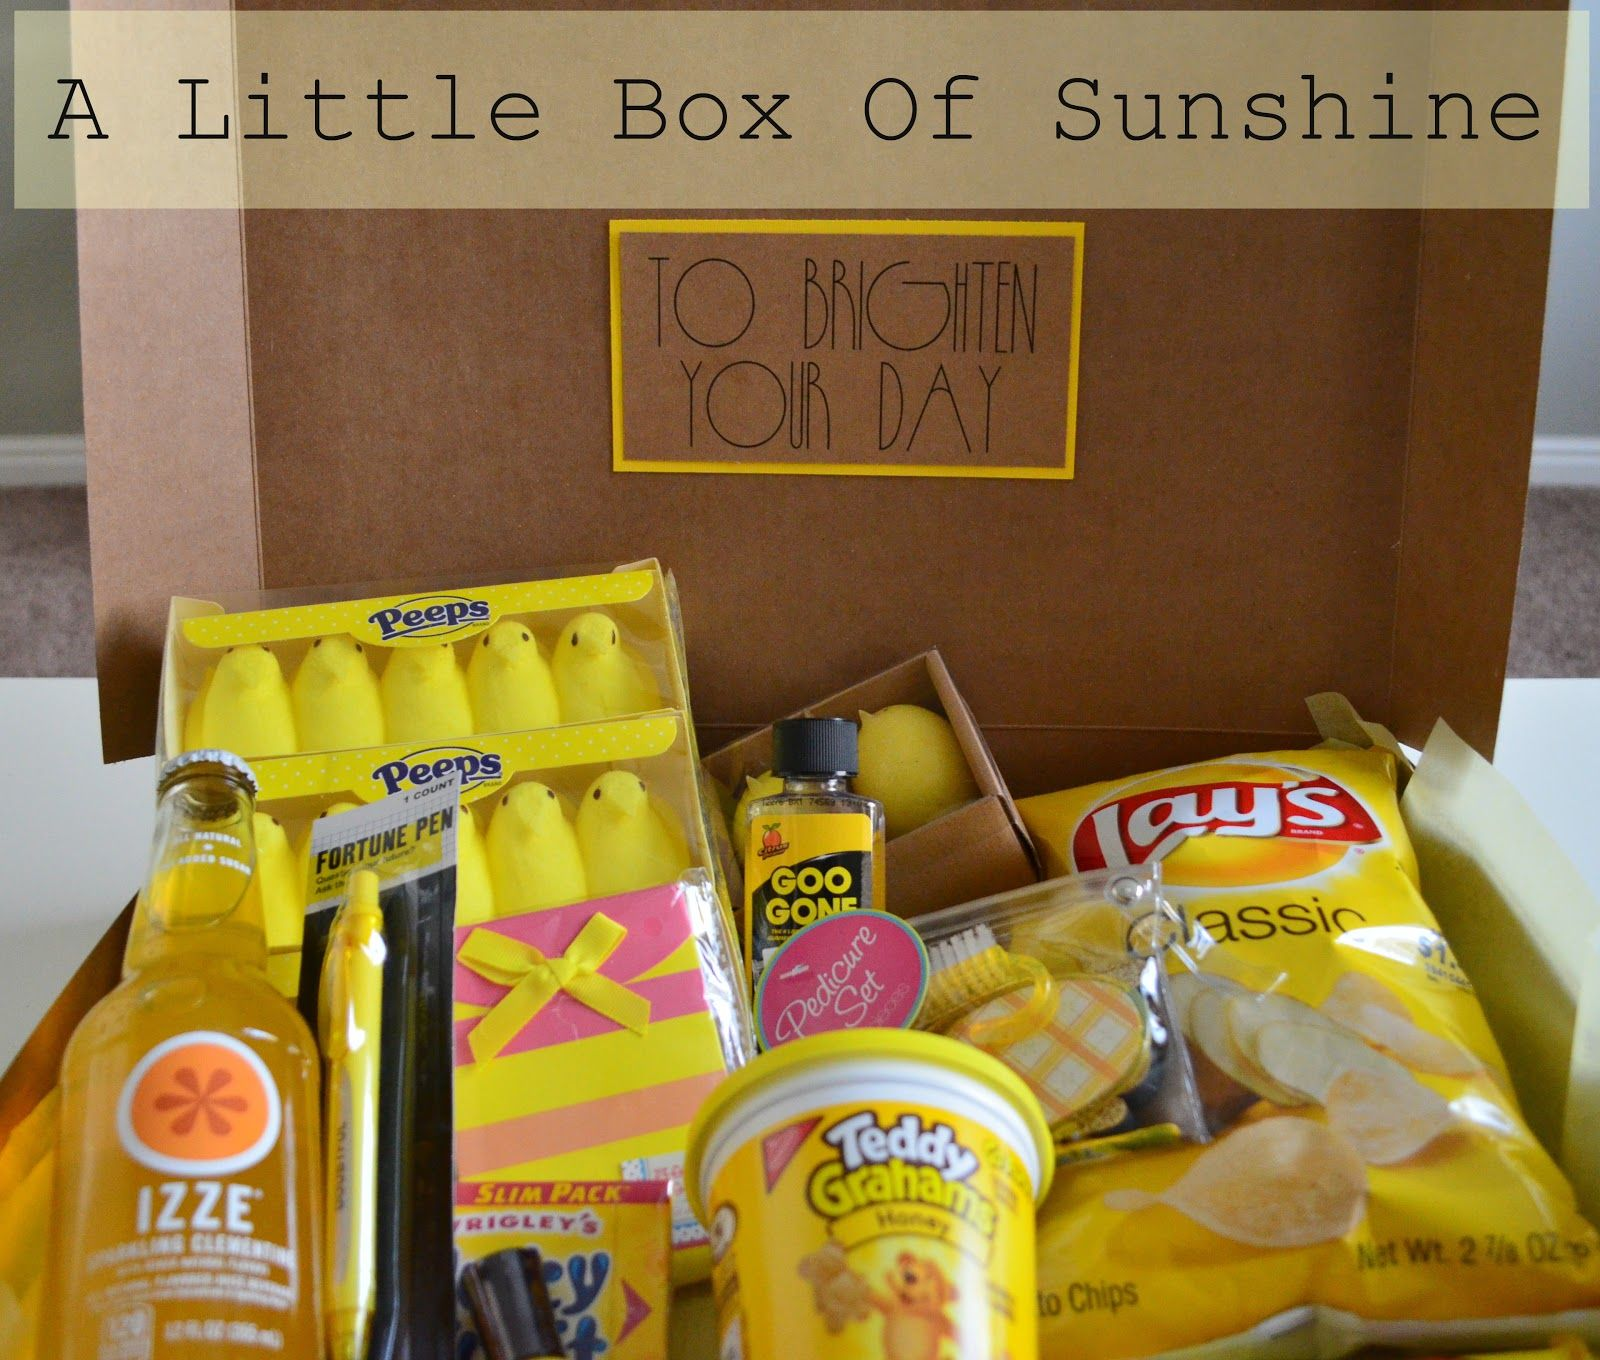 Diy Gifts For Your Best Friend Google Search: A Little Box Of Sunshine To Brighten Your Day! Perfect For